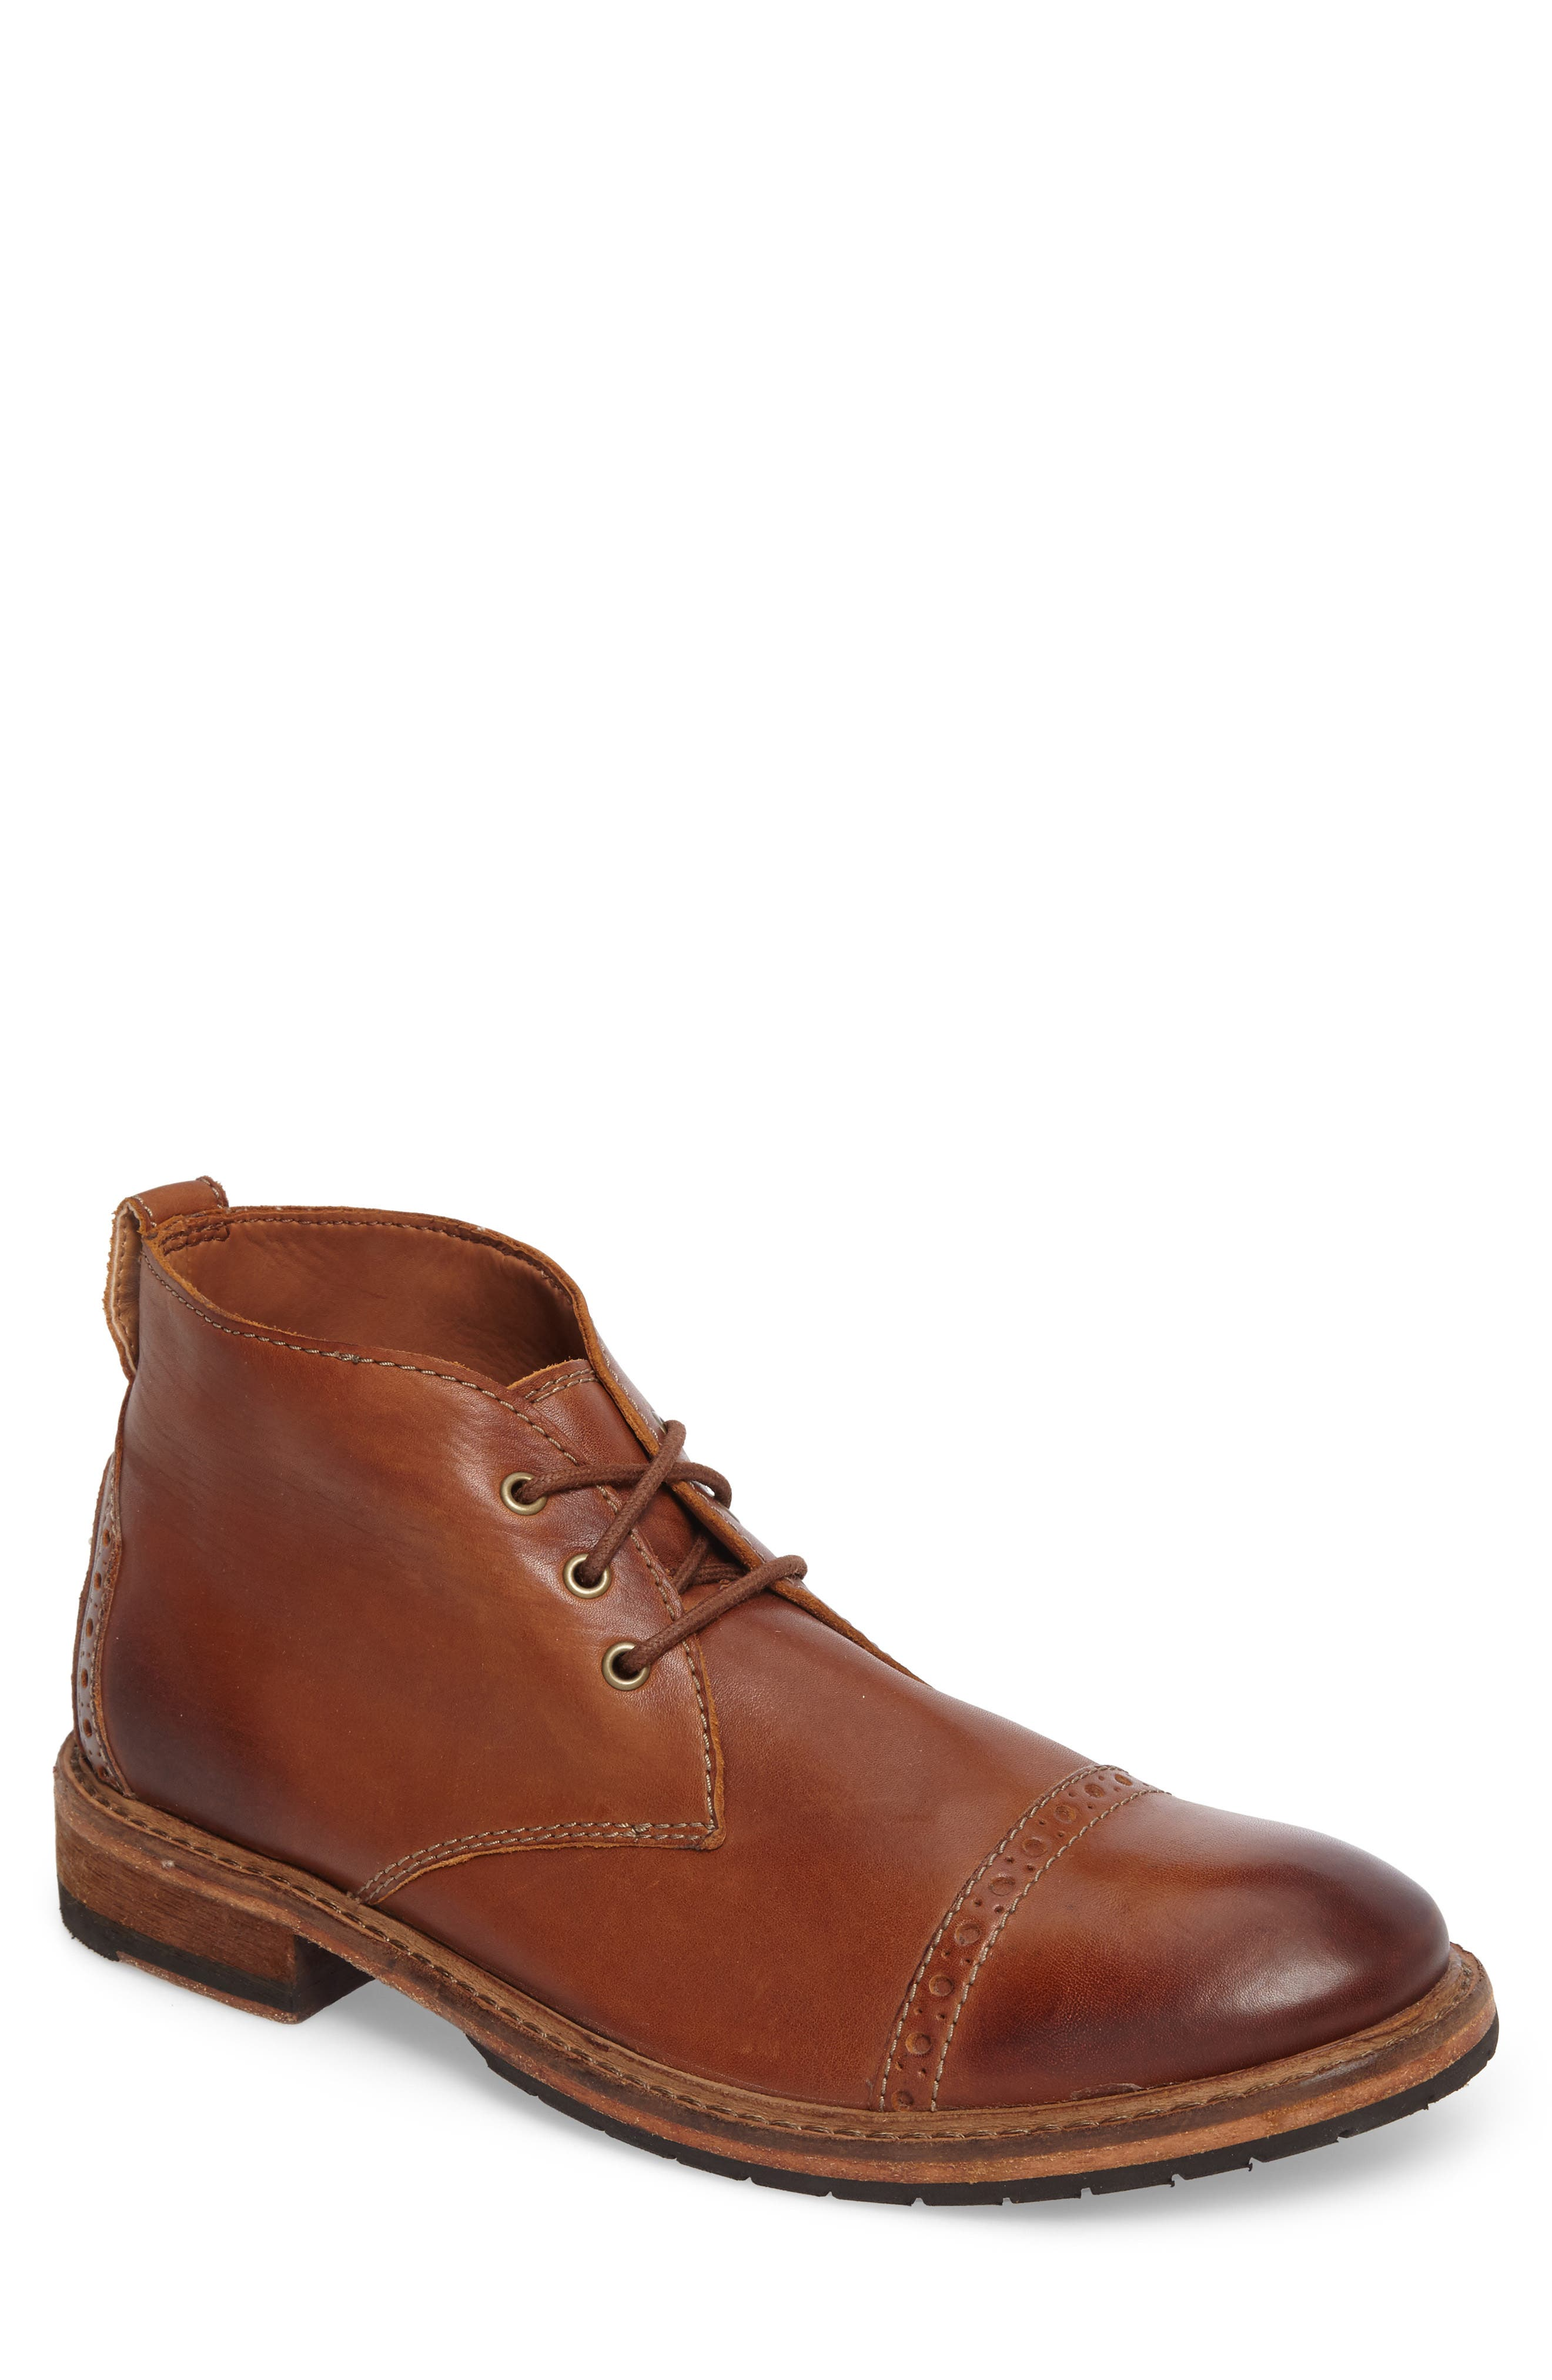 Clarkdale Water Resistant Chukka Boot,                             Main thumbnail 1, color,                             Dark Tan Leather